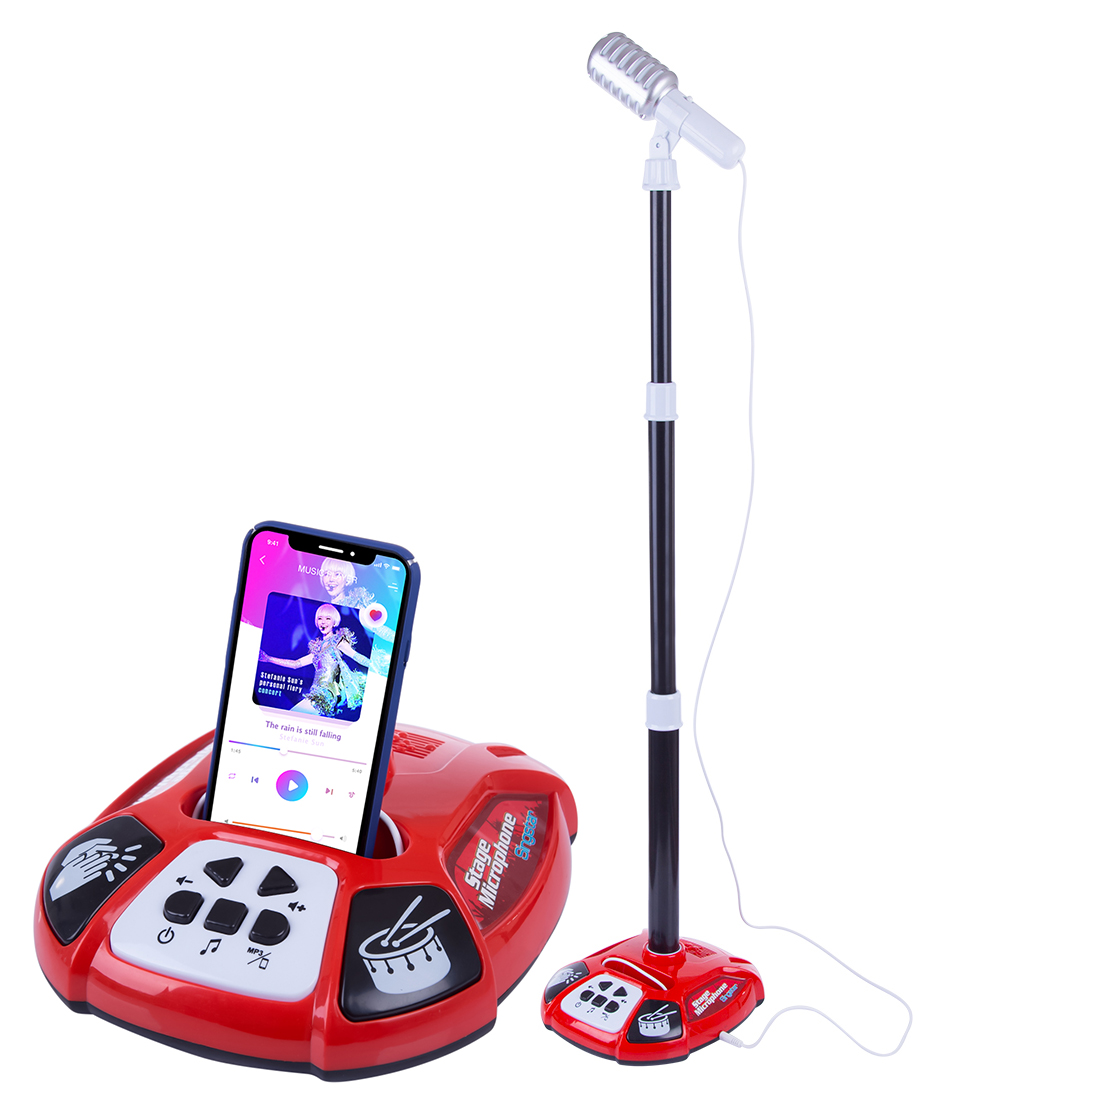 Children Karaoke Song Singing Machine Microphone Stand & Lights Toy Musical Instrument For Girls Boys Christmas Gift - Red/Pink